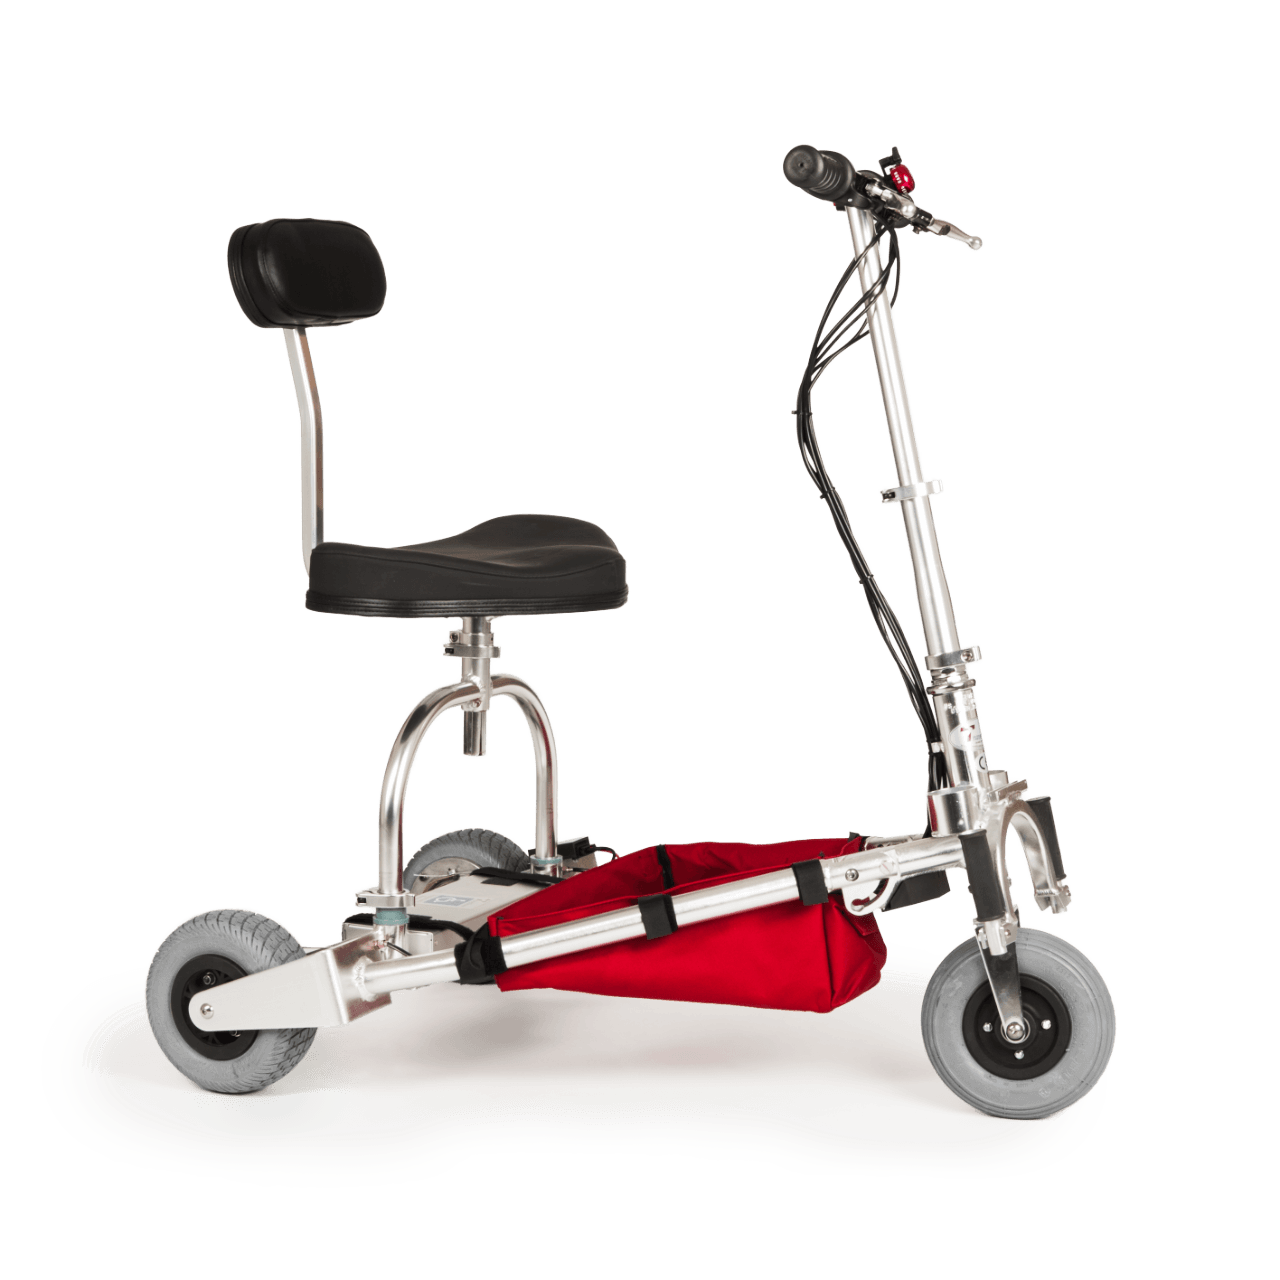 Mobility Scooters For Sale >> The World's Lightest Mobility Scooter | TravelScoot